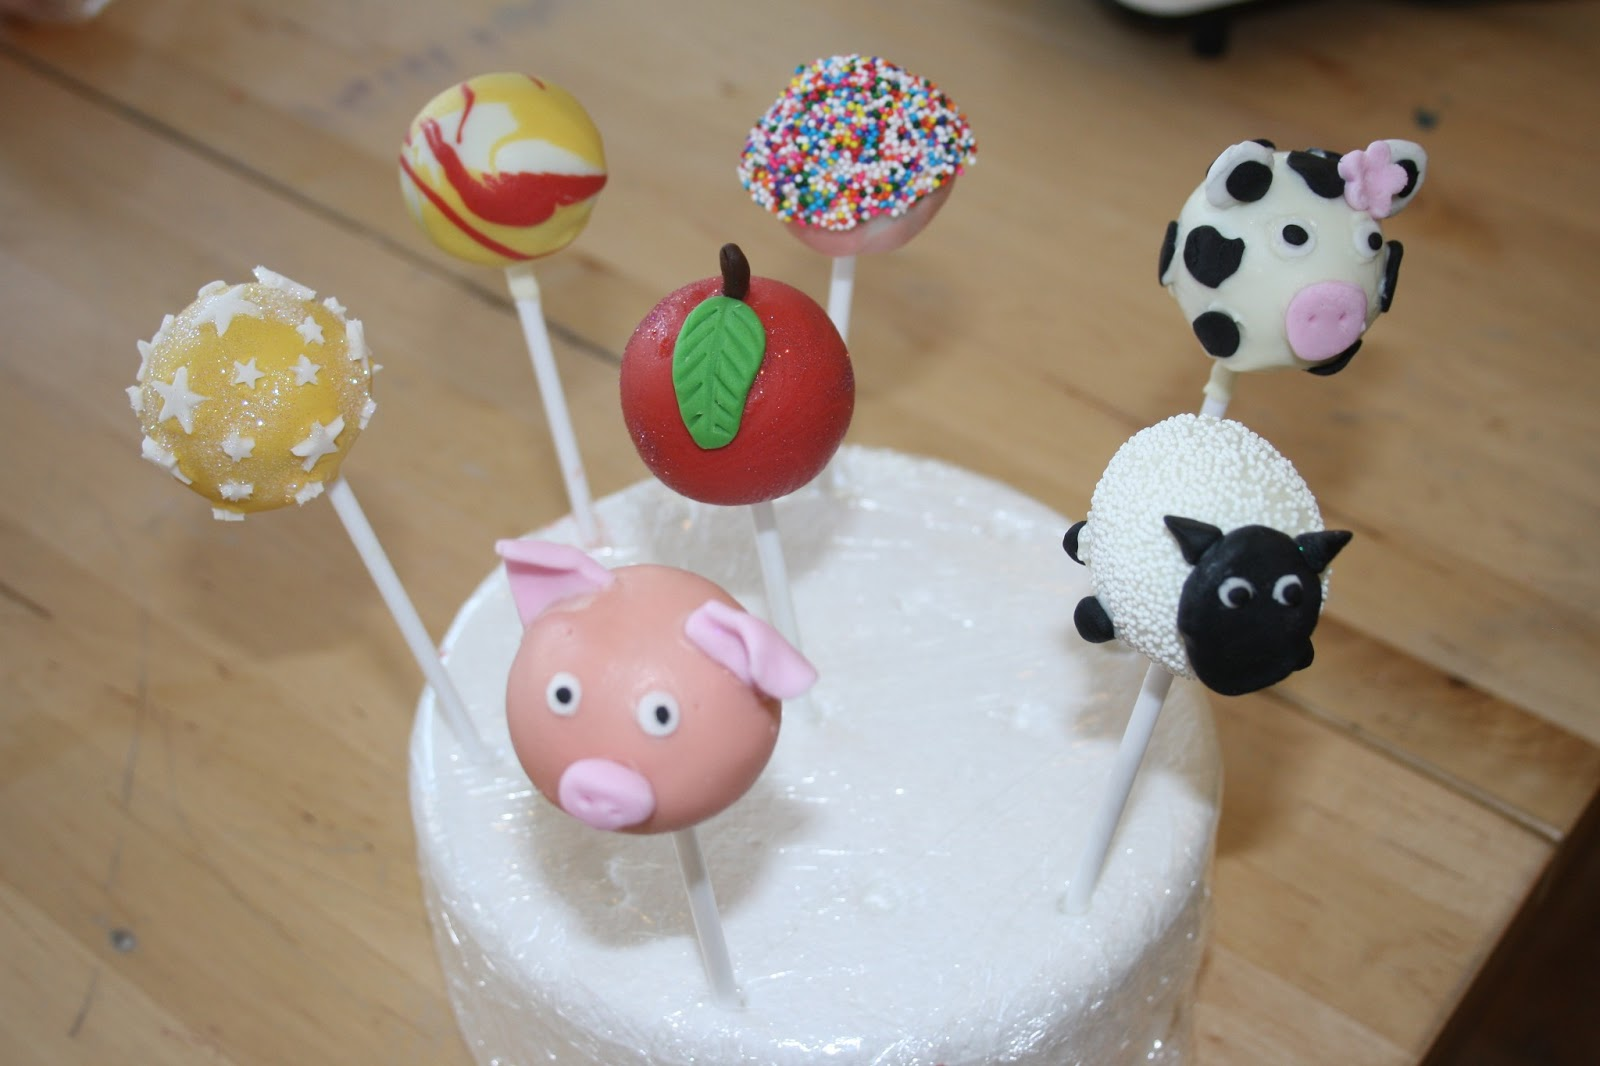 caroline makes cake pops decorating class pigs sheep and cows. Black Bedroom Furniture Sets. Home Design Ideas